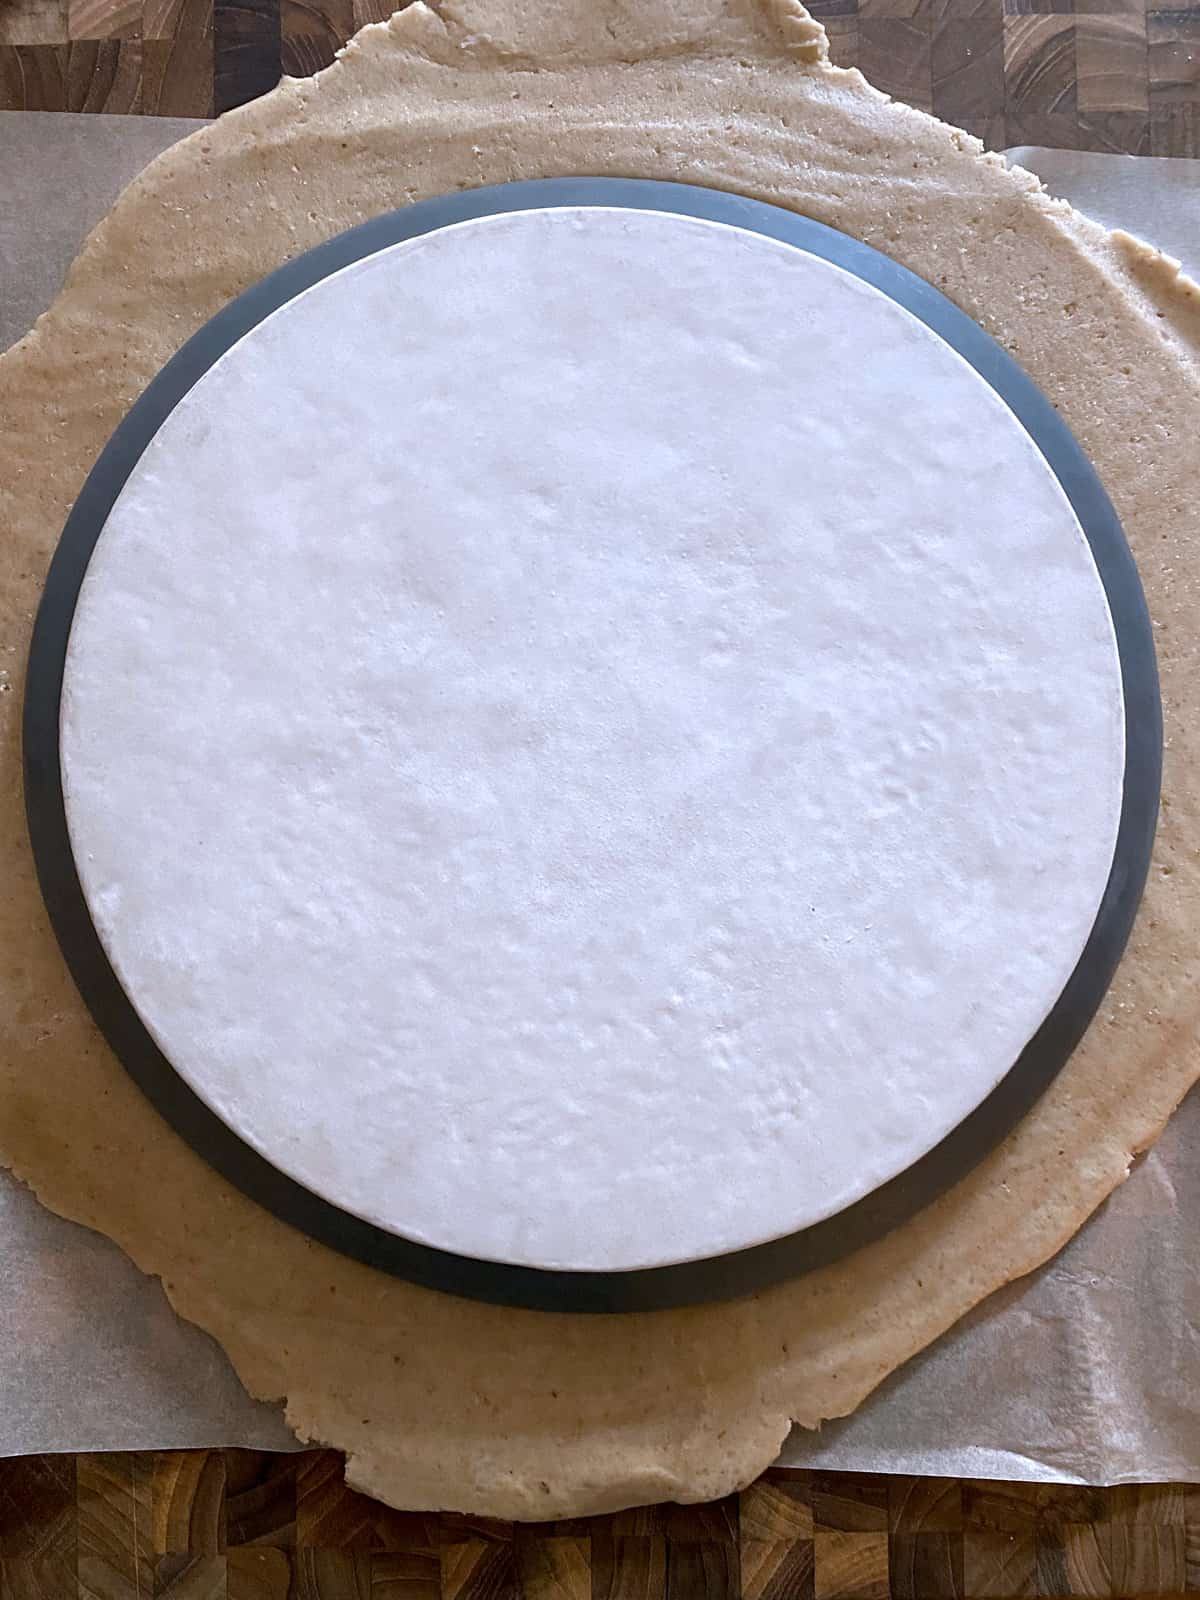 A plate on pie dough on a working surface.